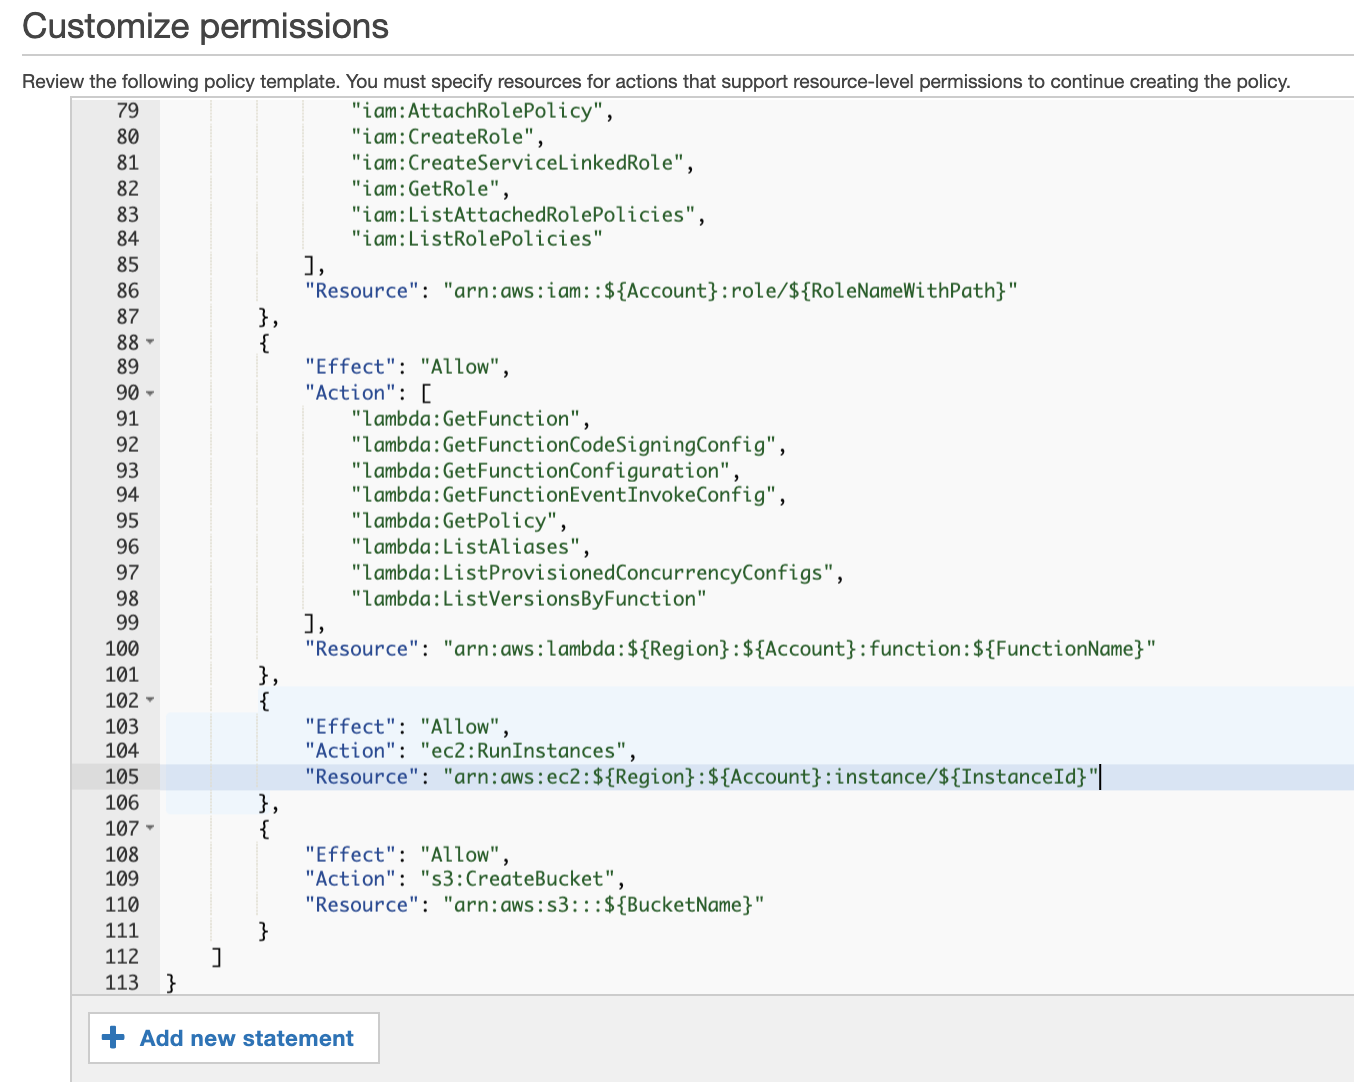 Figure 7: Customize permissions on the policy